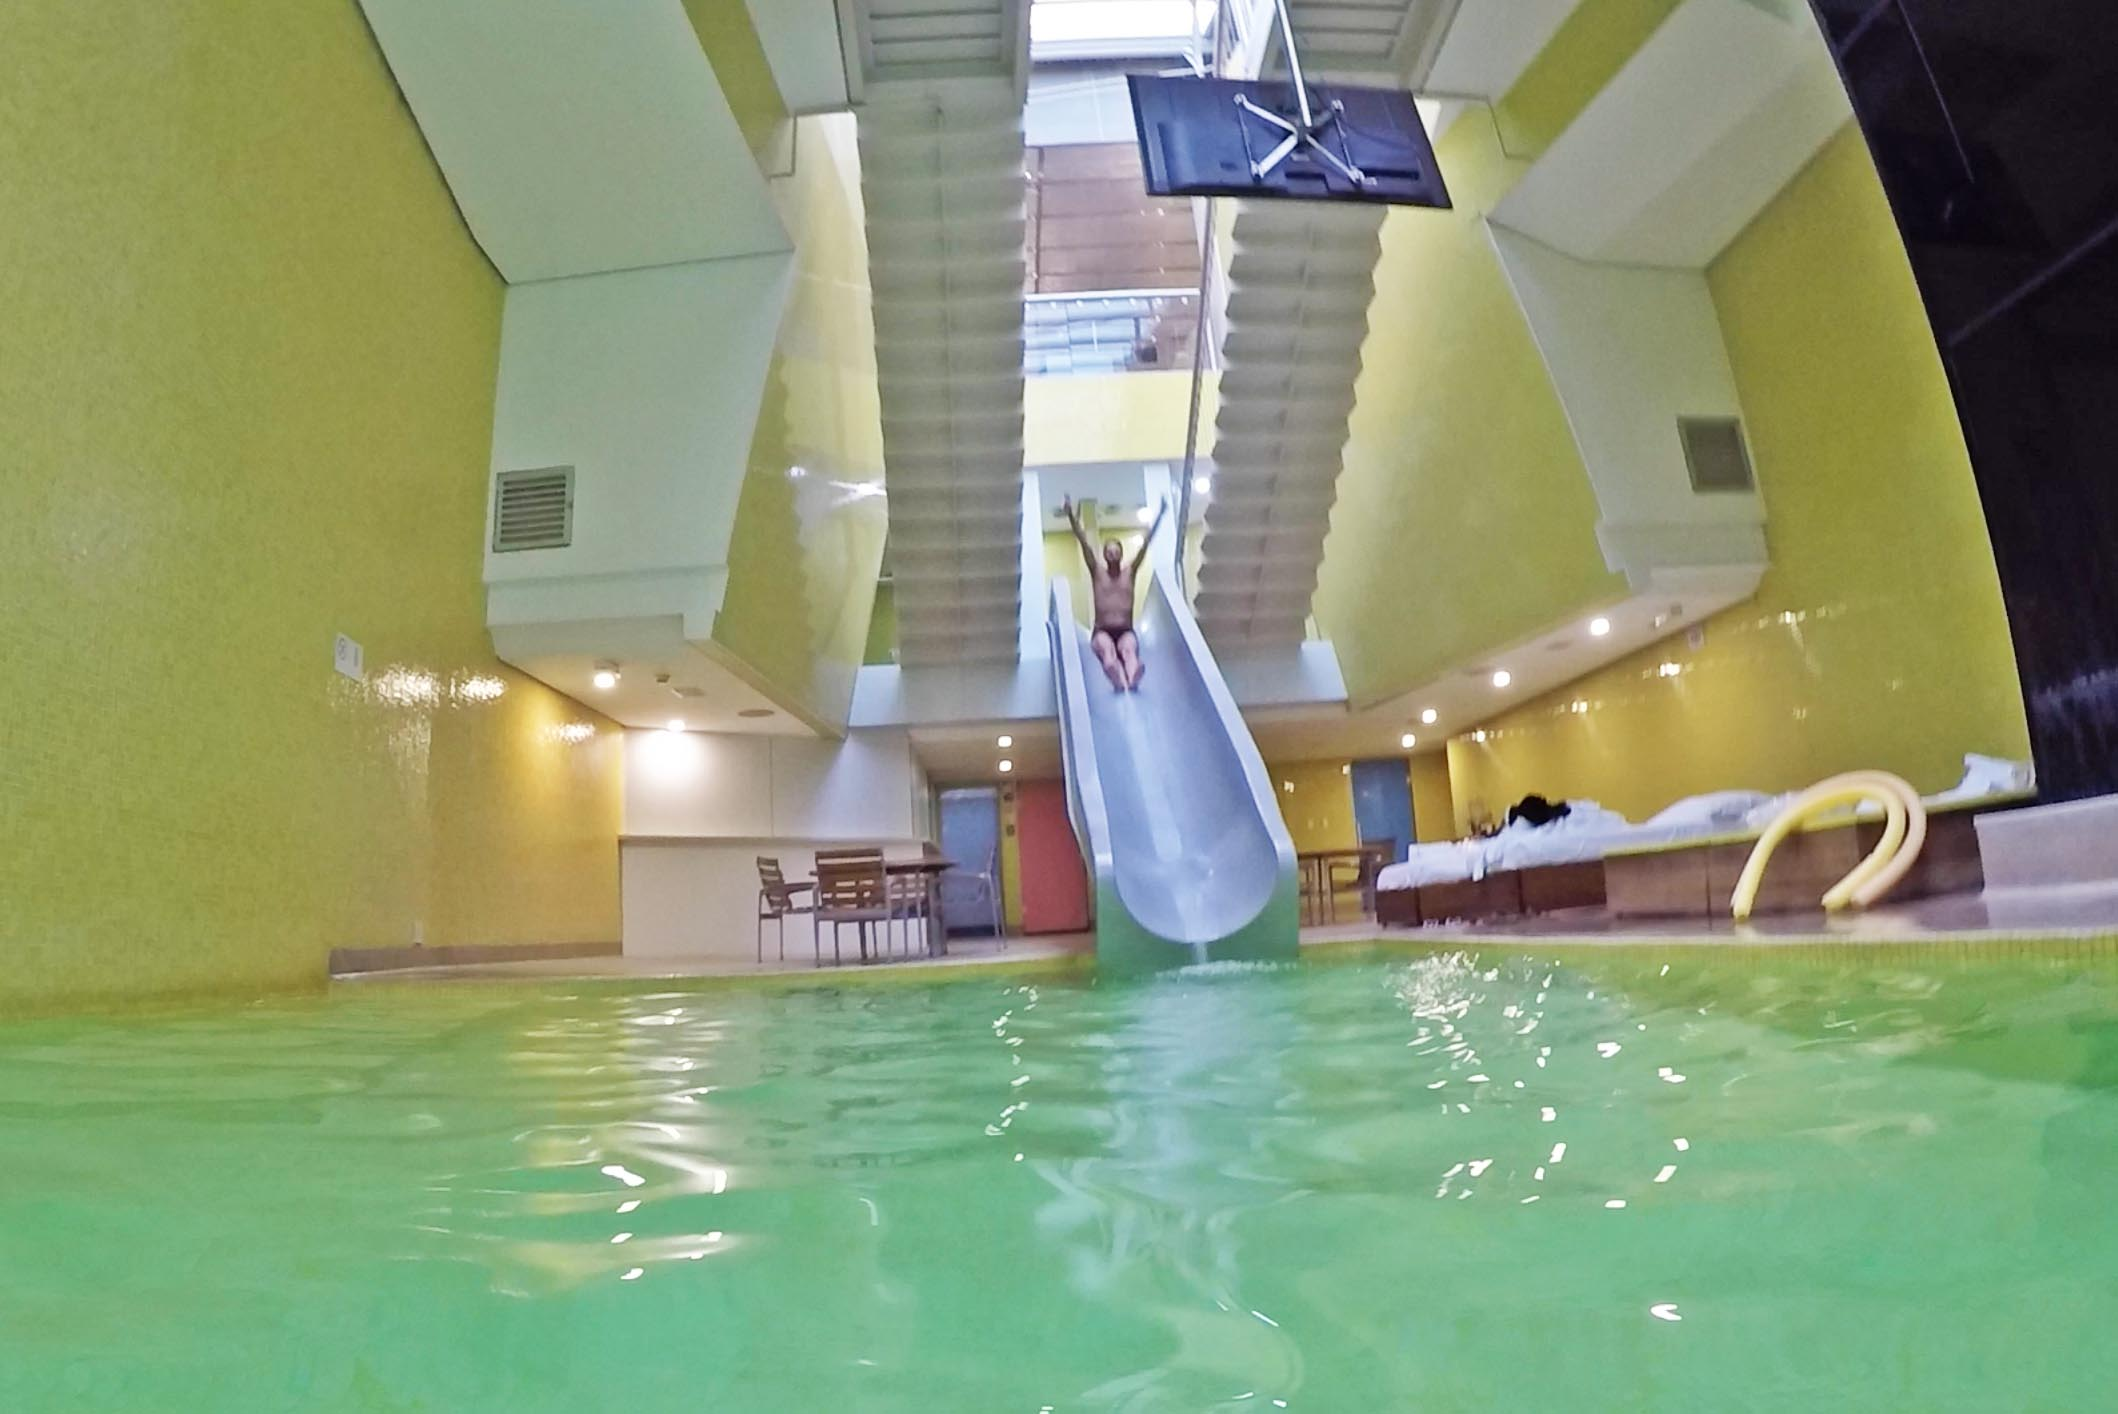 hotel unique indoor pool piscina coberta toboágua tobogã water slide